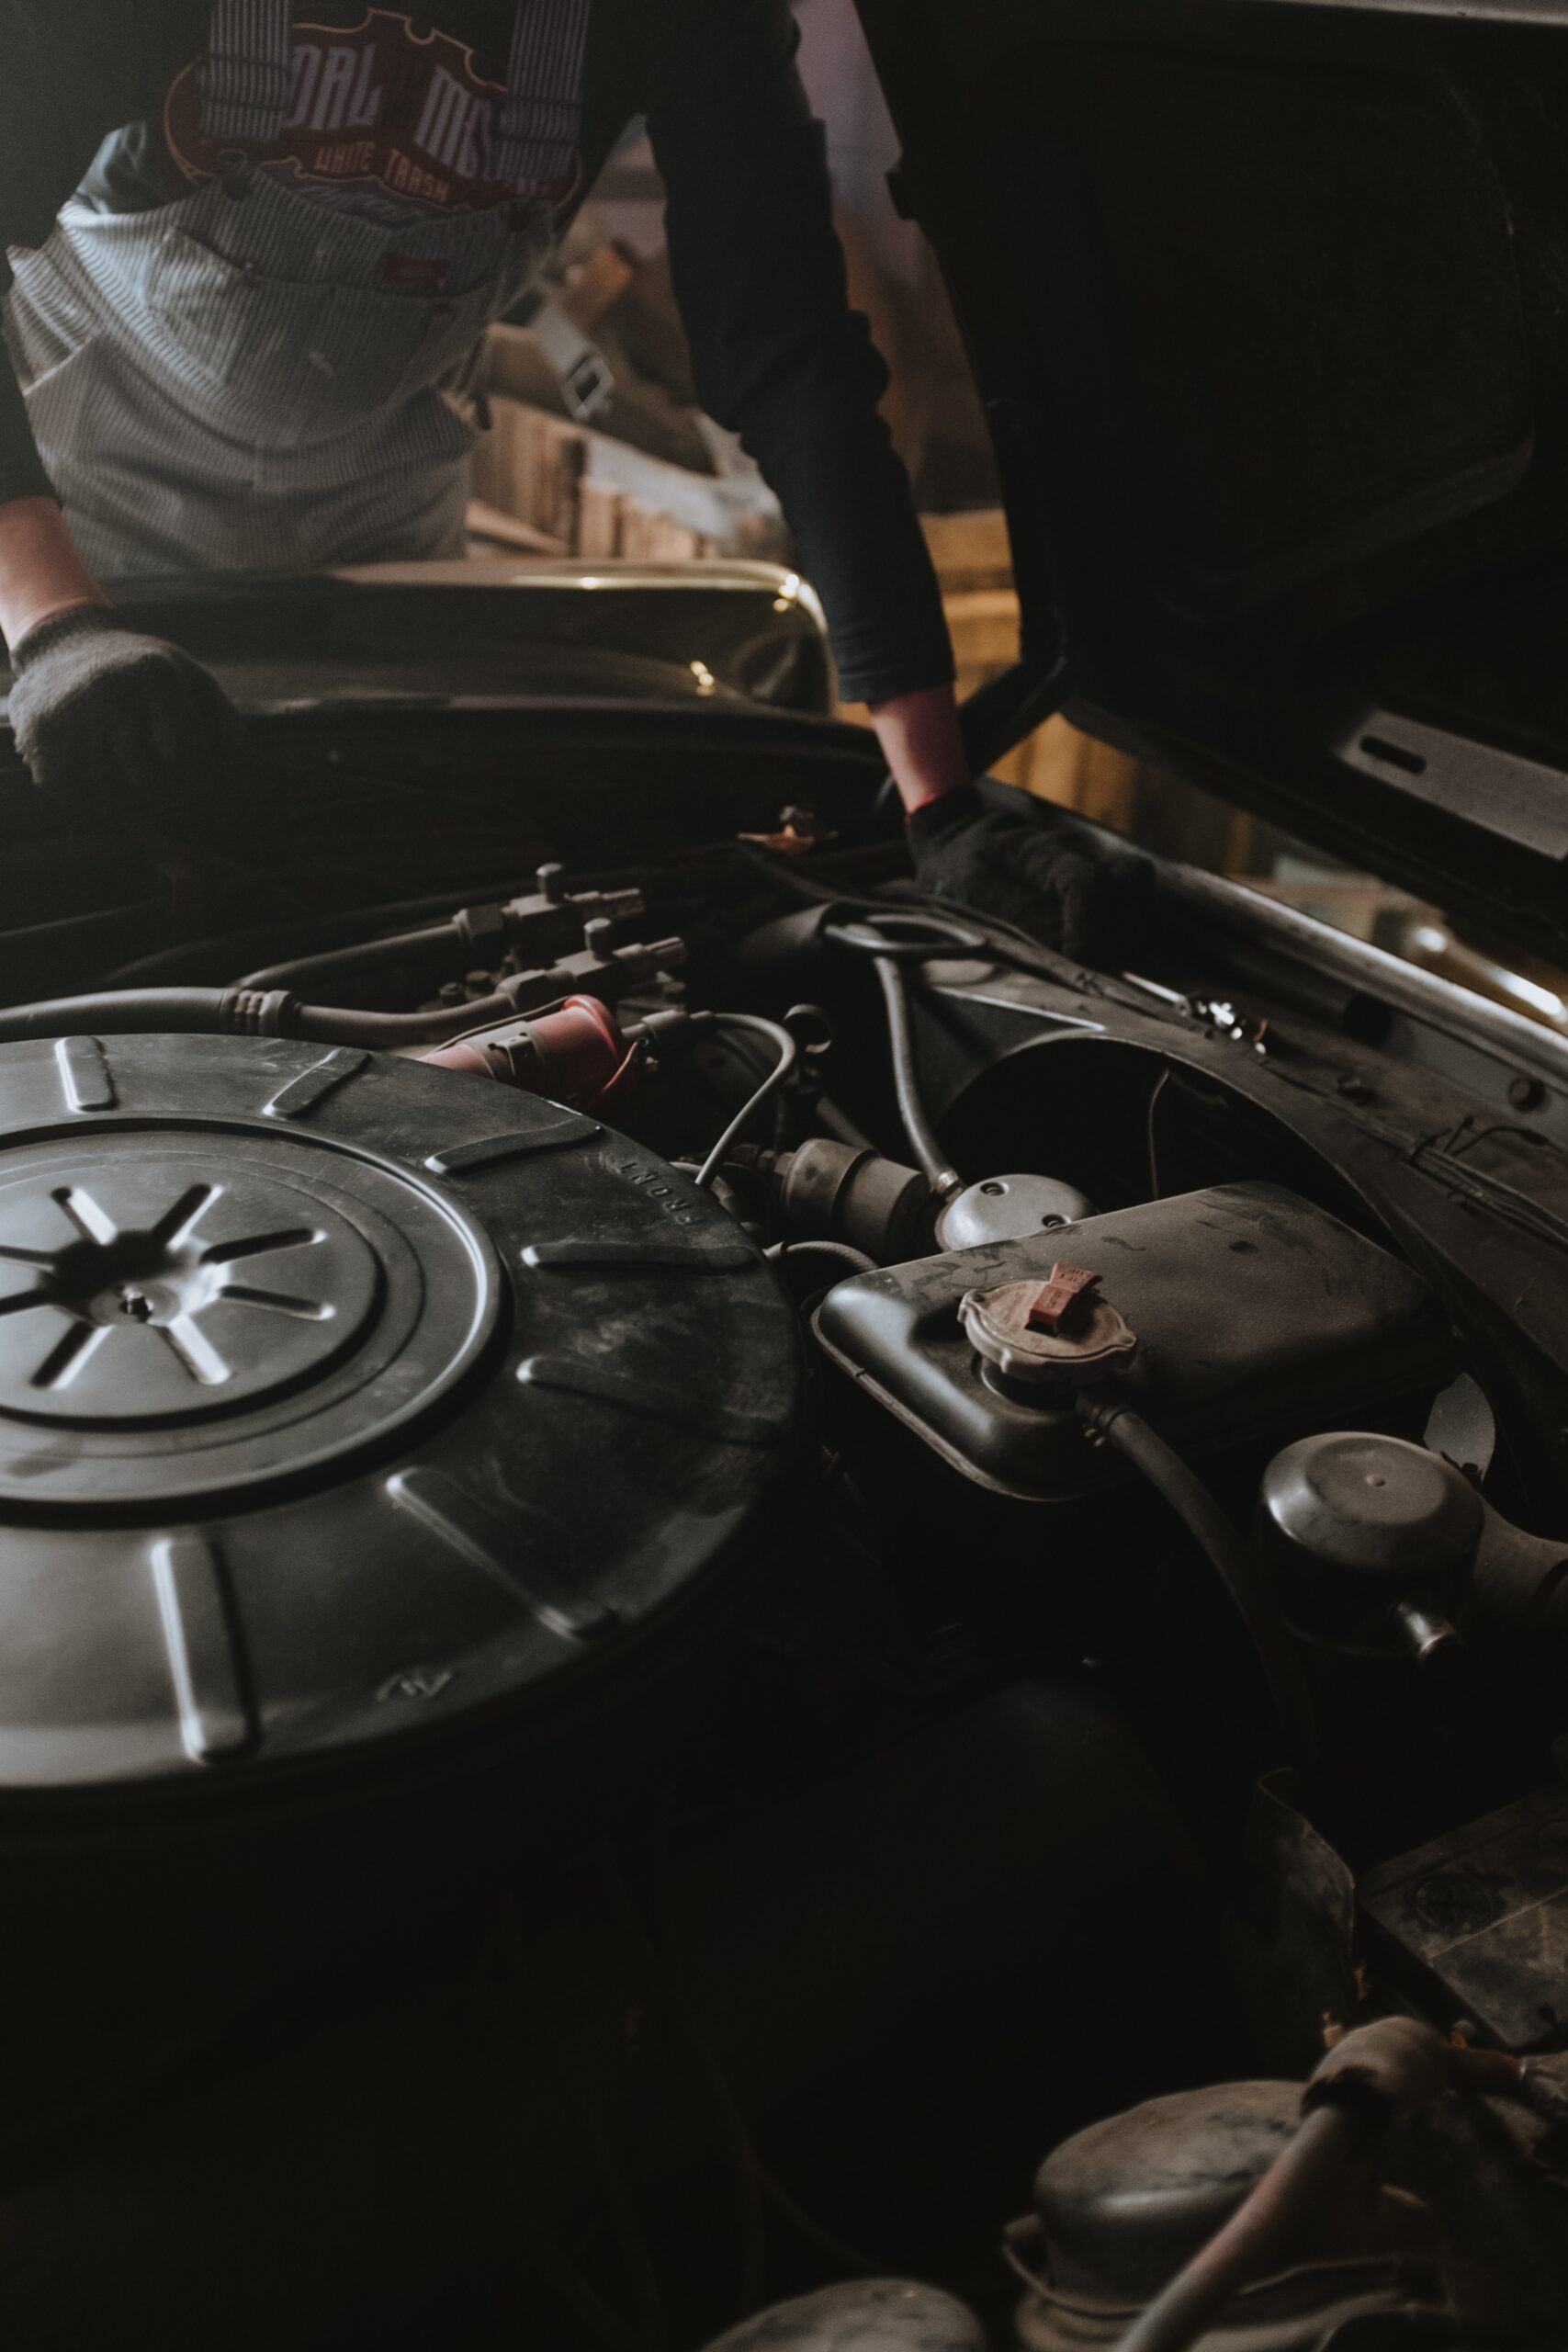 How can a Hyundai owner prove maintenance was performed on schedule?